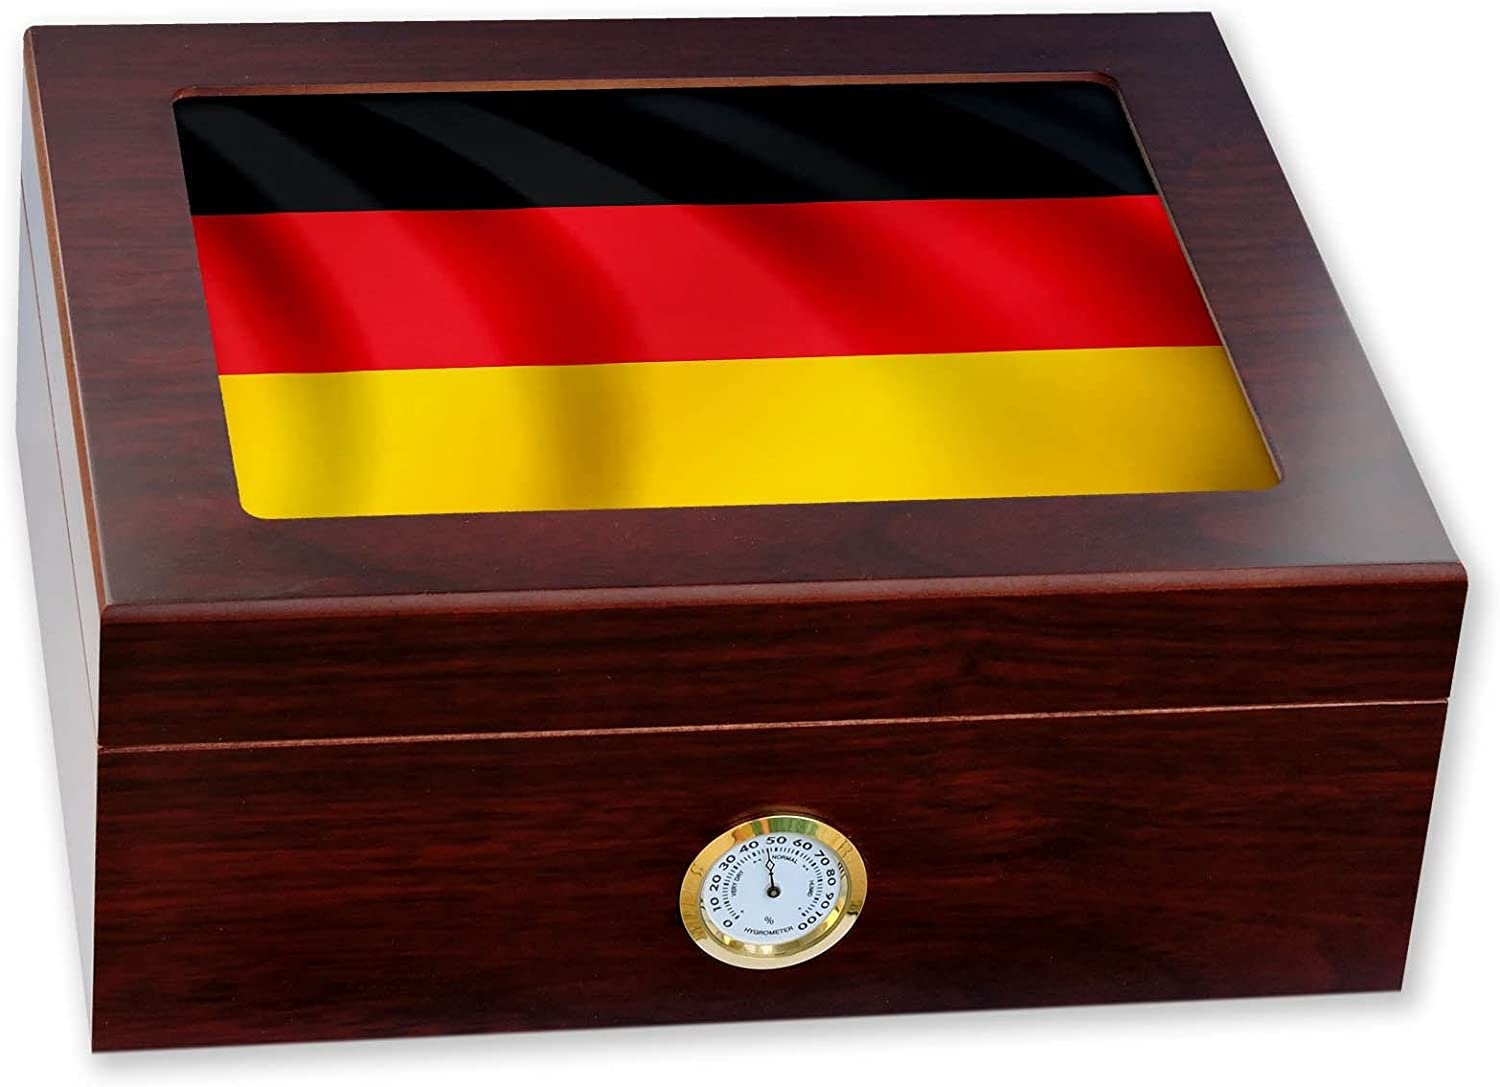 ExpressItBest Premium Desktop Humidor - Glass Top - Flag of Germany (German) - Waves Design - Cedar Lined with humidifier & Front Mounted Hygrometer.